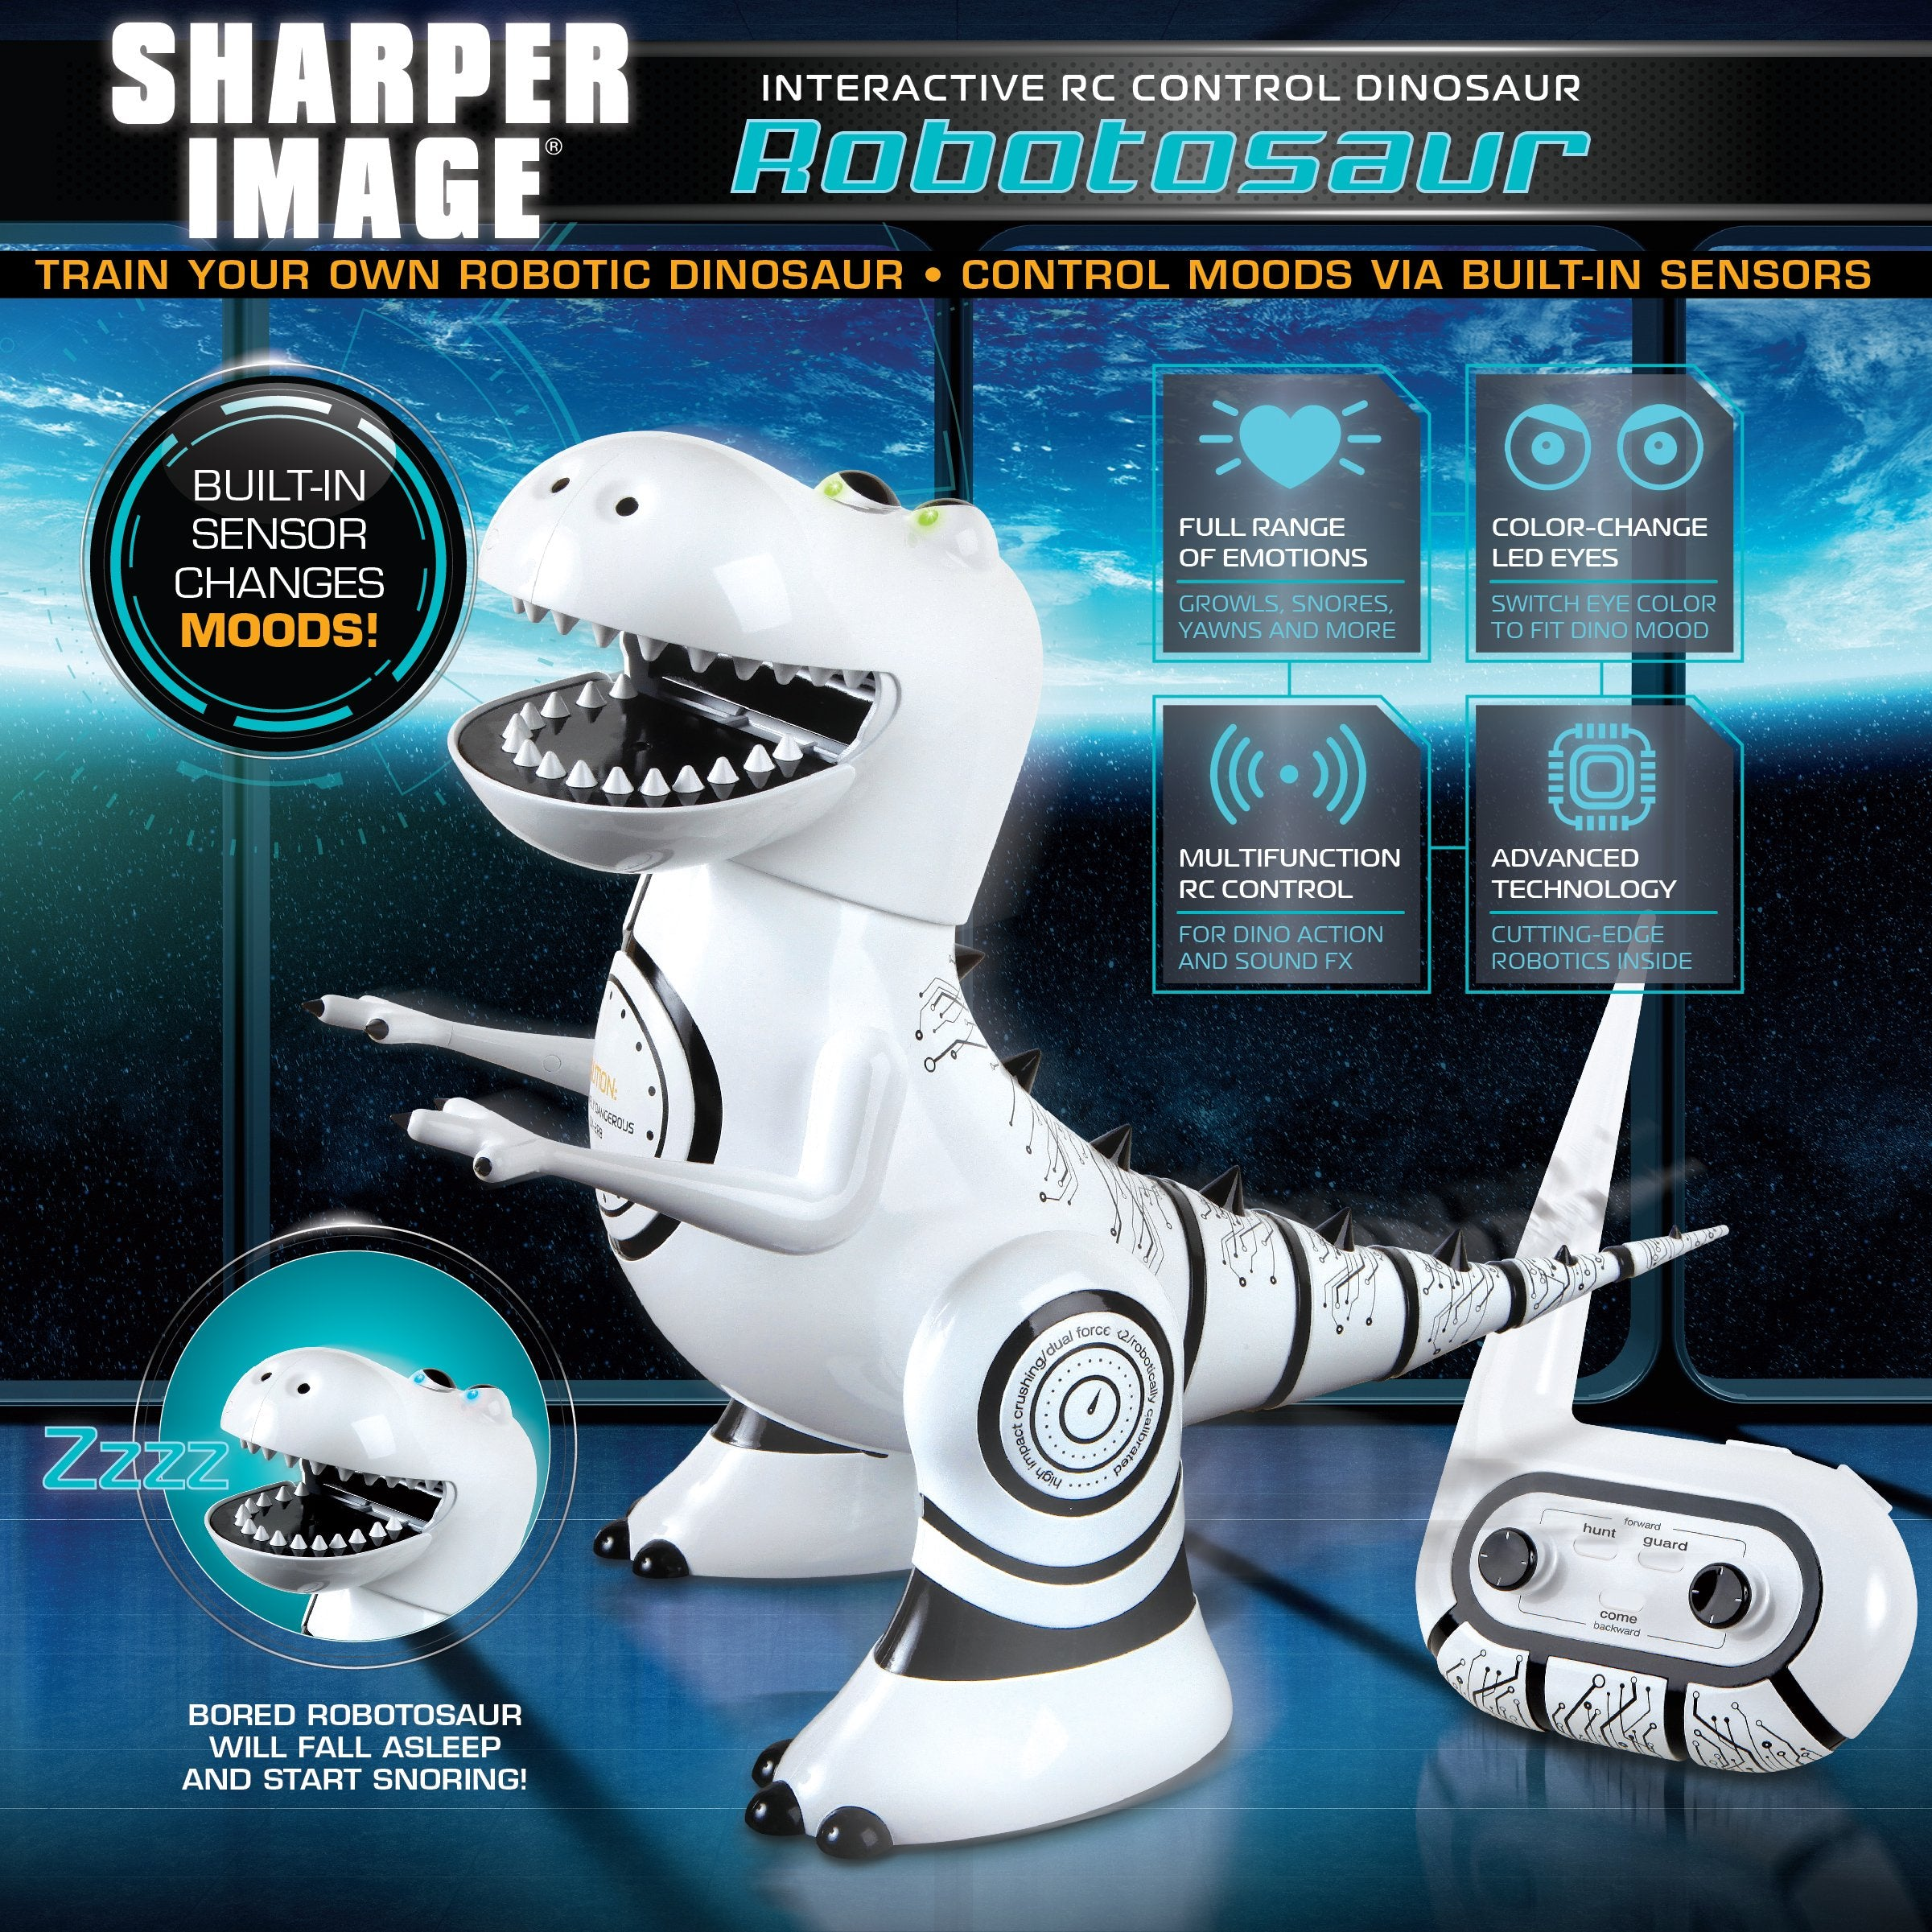 Sharper Image Interactive RC Robotosaur Dinosaur, Built-in Mood Sensors and Color-Changing LED Eyes, Motion Detection, Growls, Snores, Battery Operated- White/Black - wiihuu